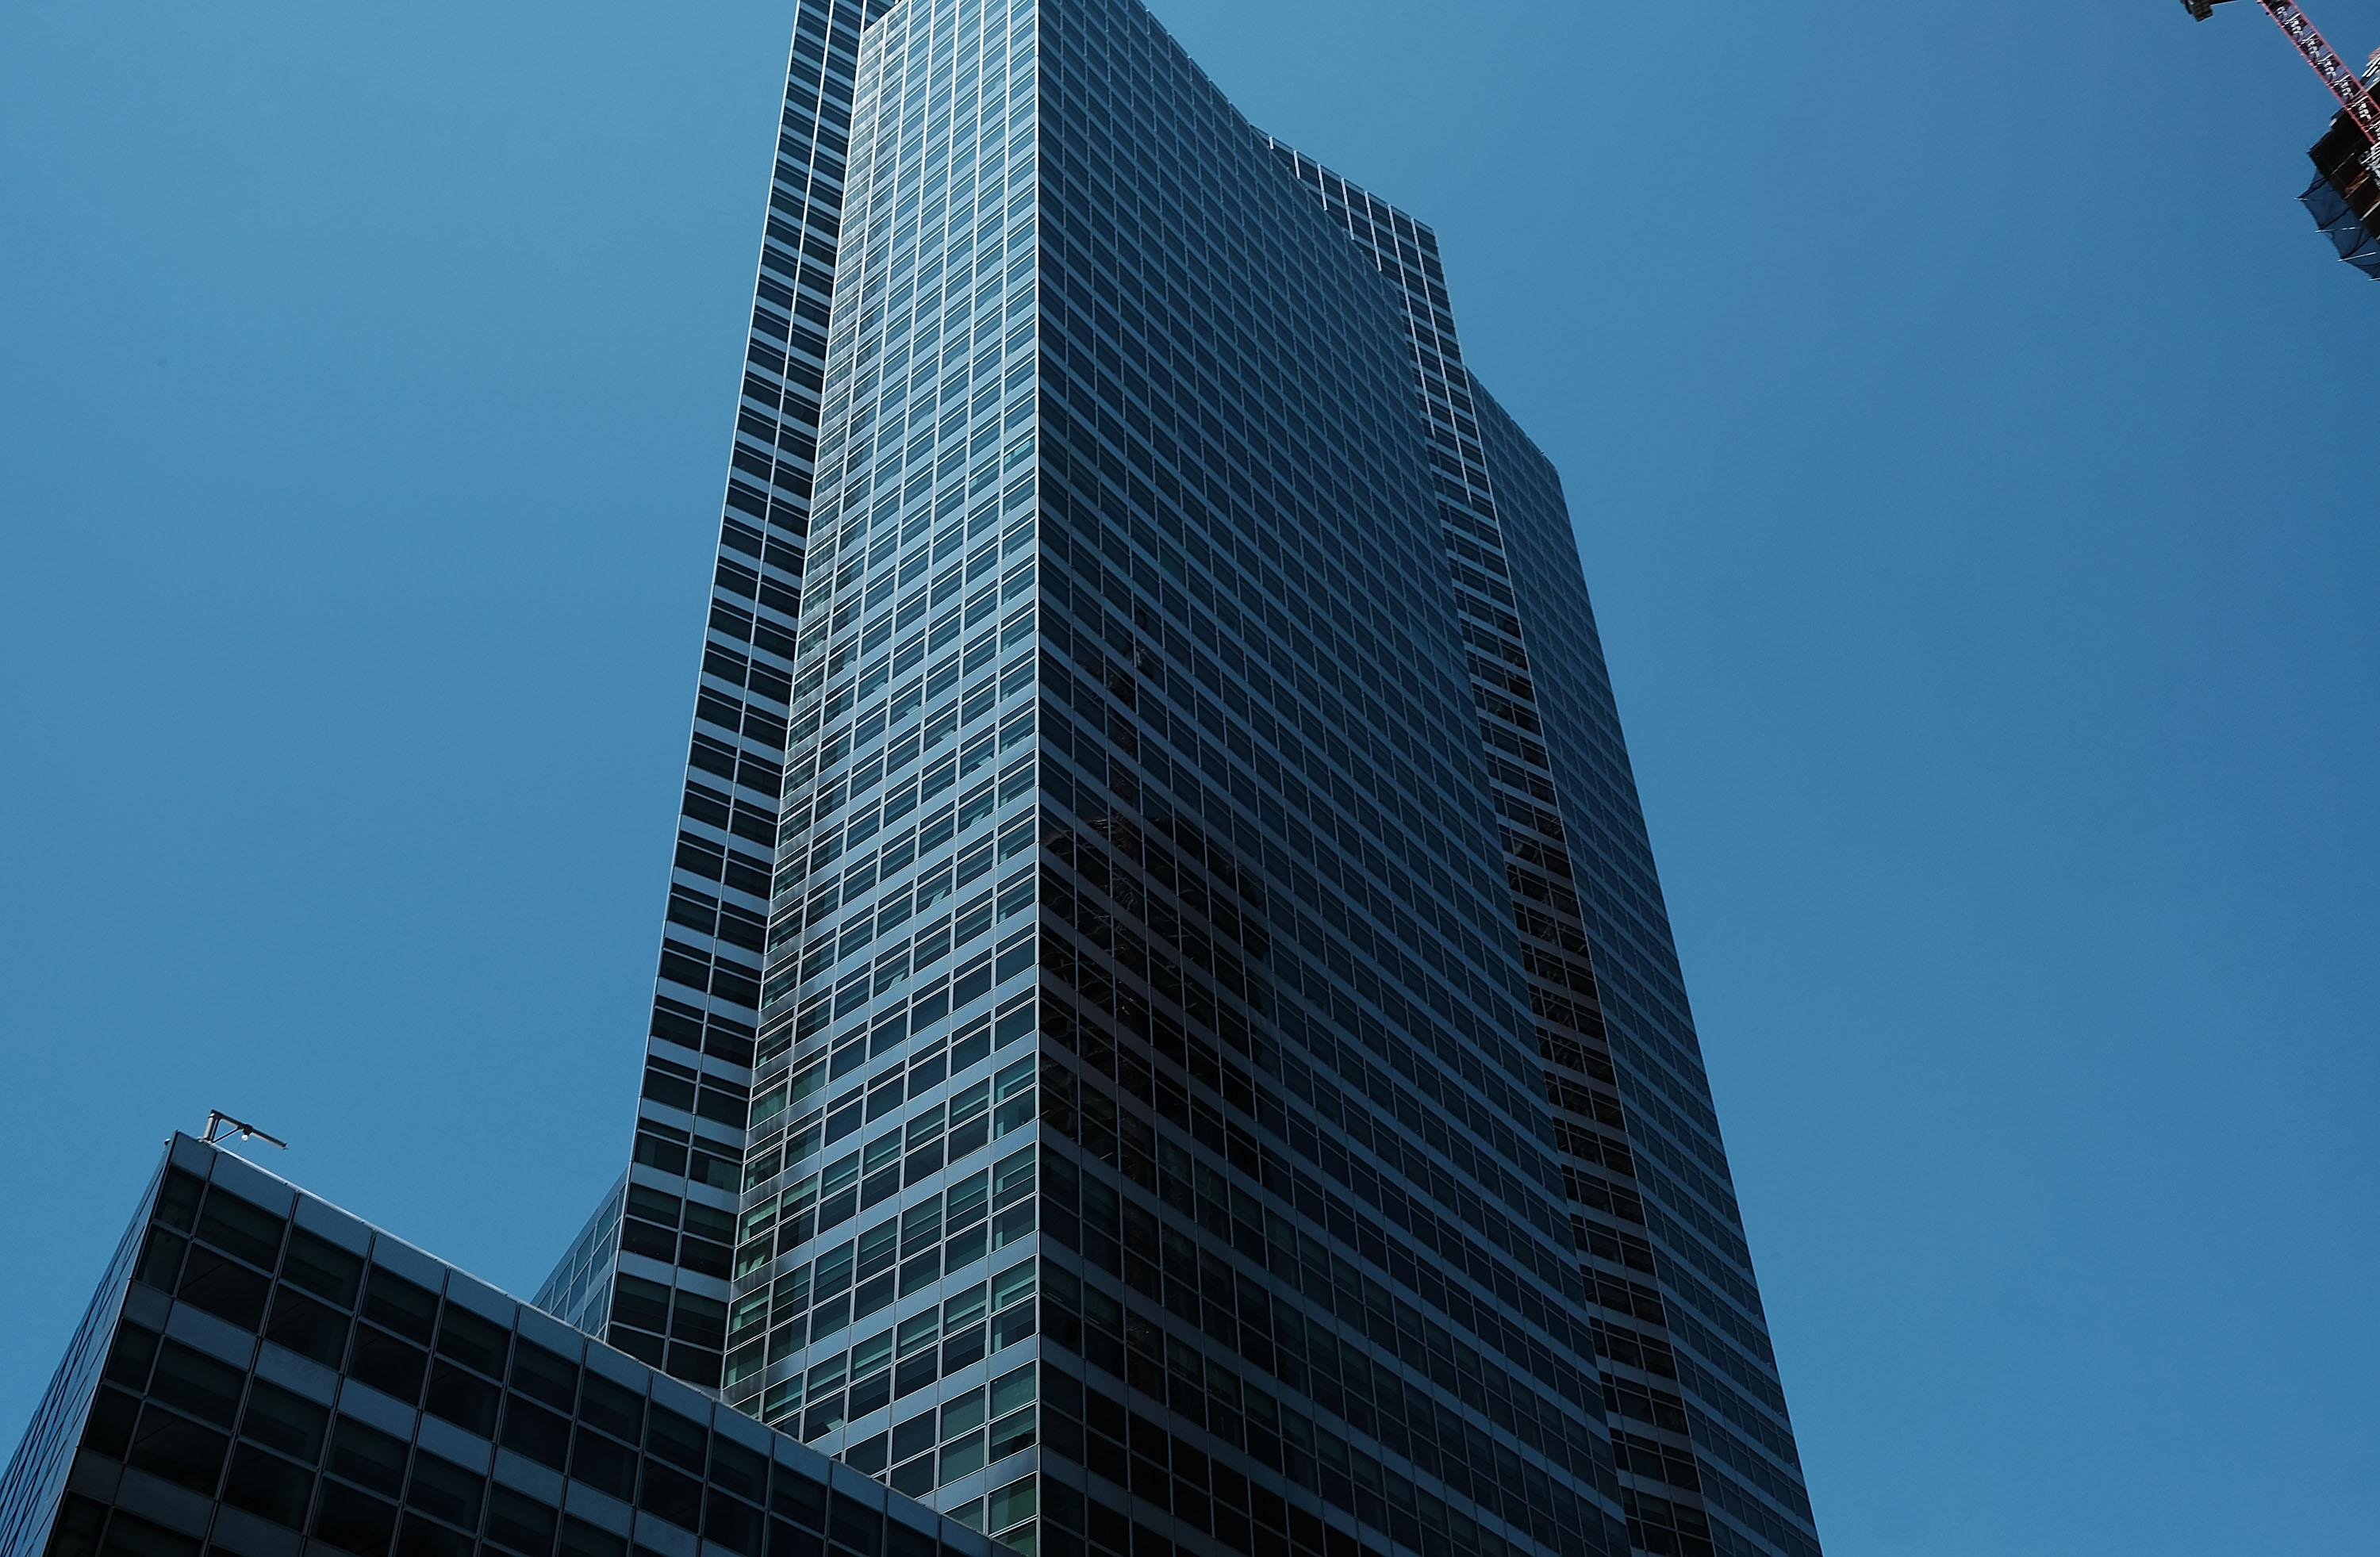 Goldman Sachs' New York headquarters in lower Manhattan.